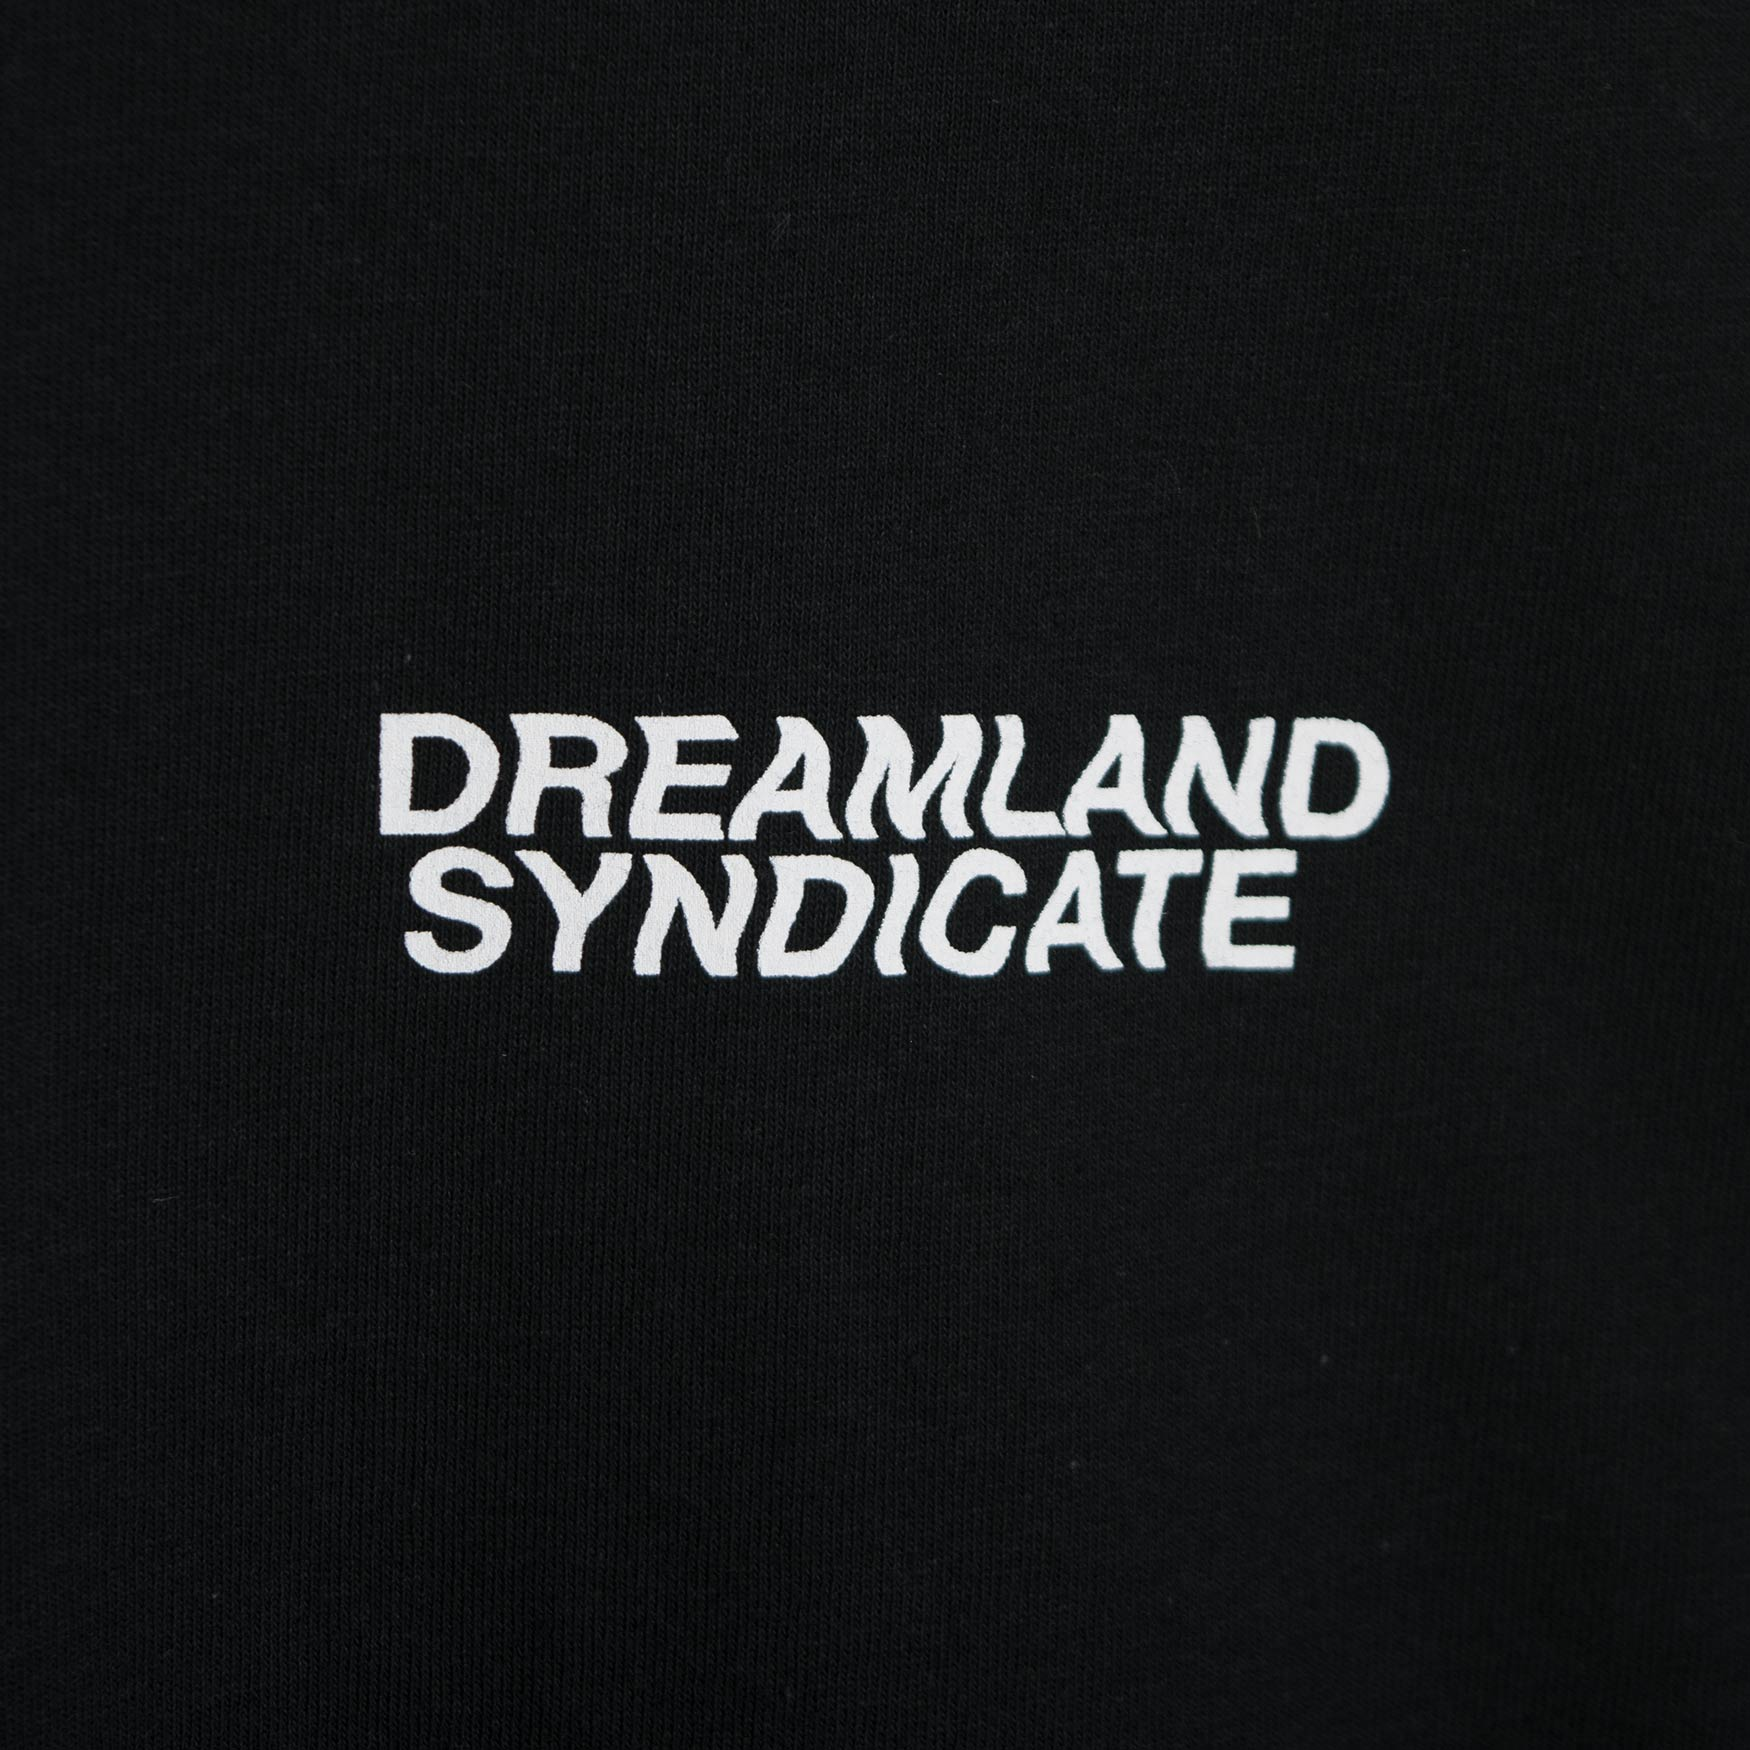 Dreamland Syndicate Fight T-Shirt - Black Not Listed - CARTOCON